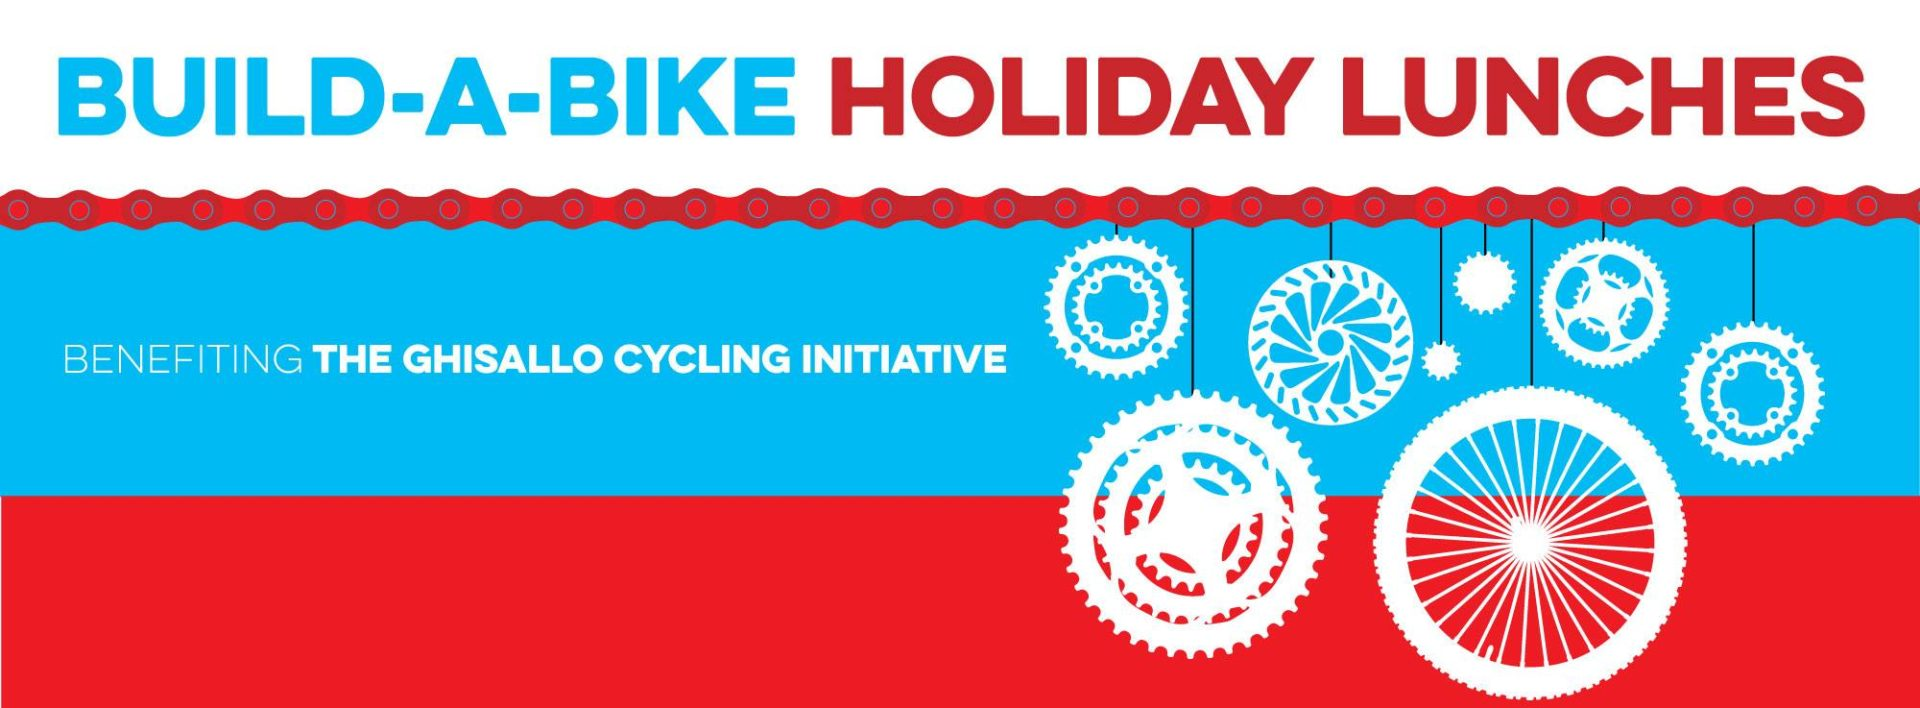 build-a-bike-lunches Austin Craft Beer Events Dec 5th - 11th 2016